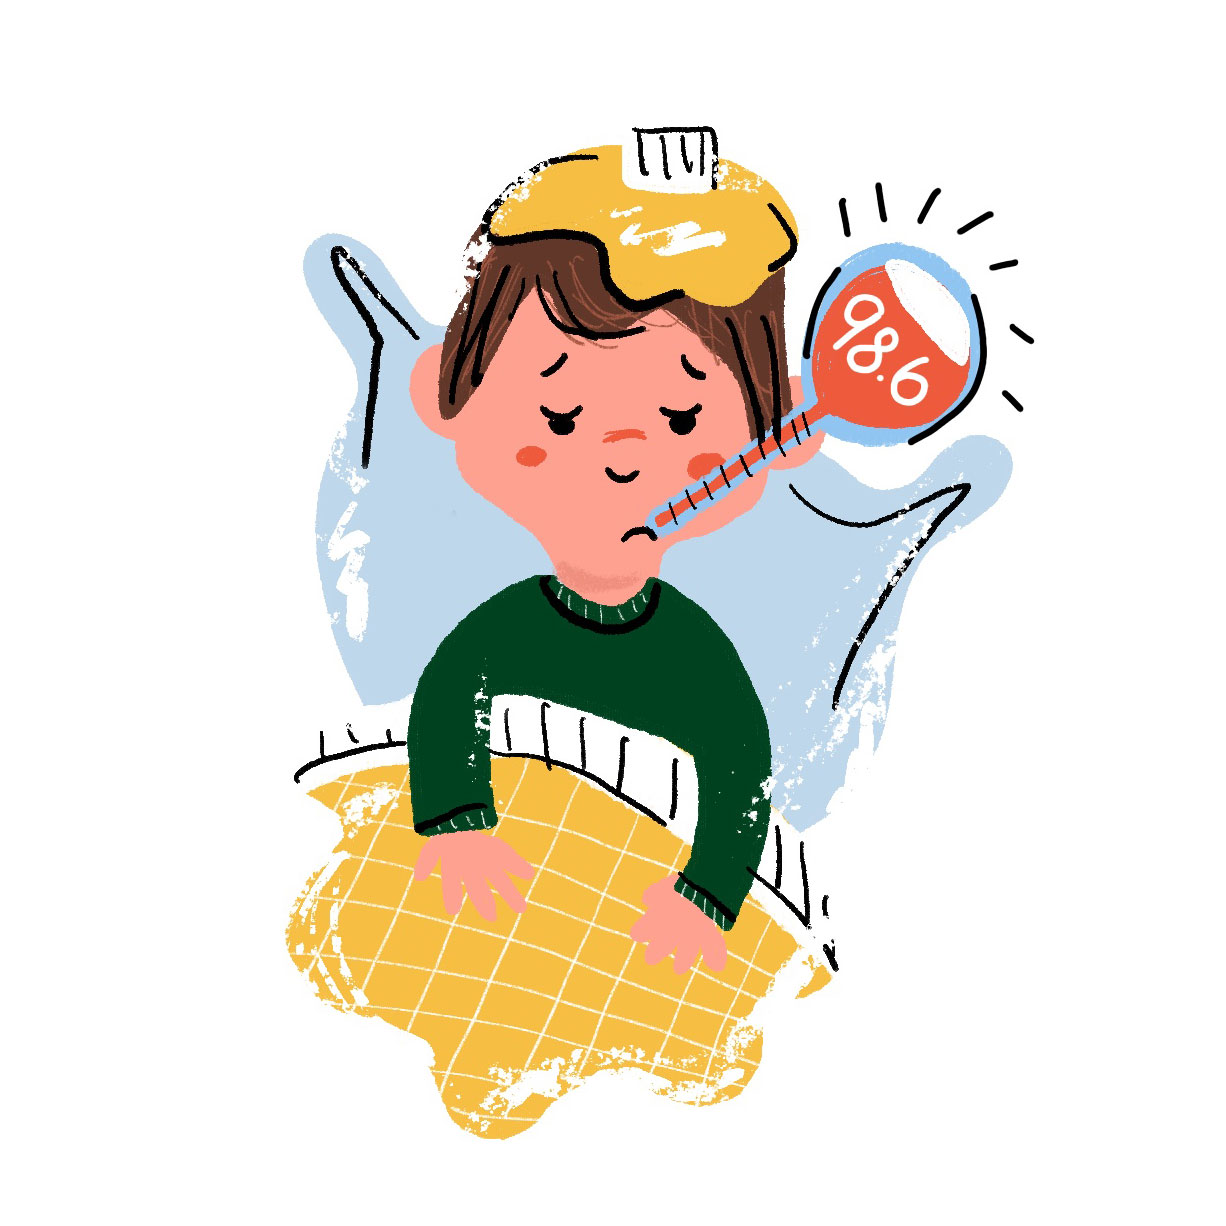 Illustration of young boy sick in bed with a thermometer and a teddy bear.